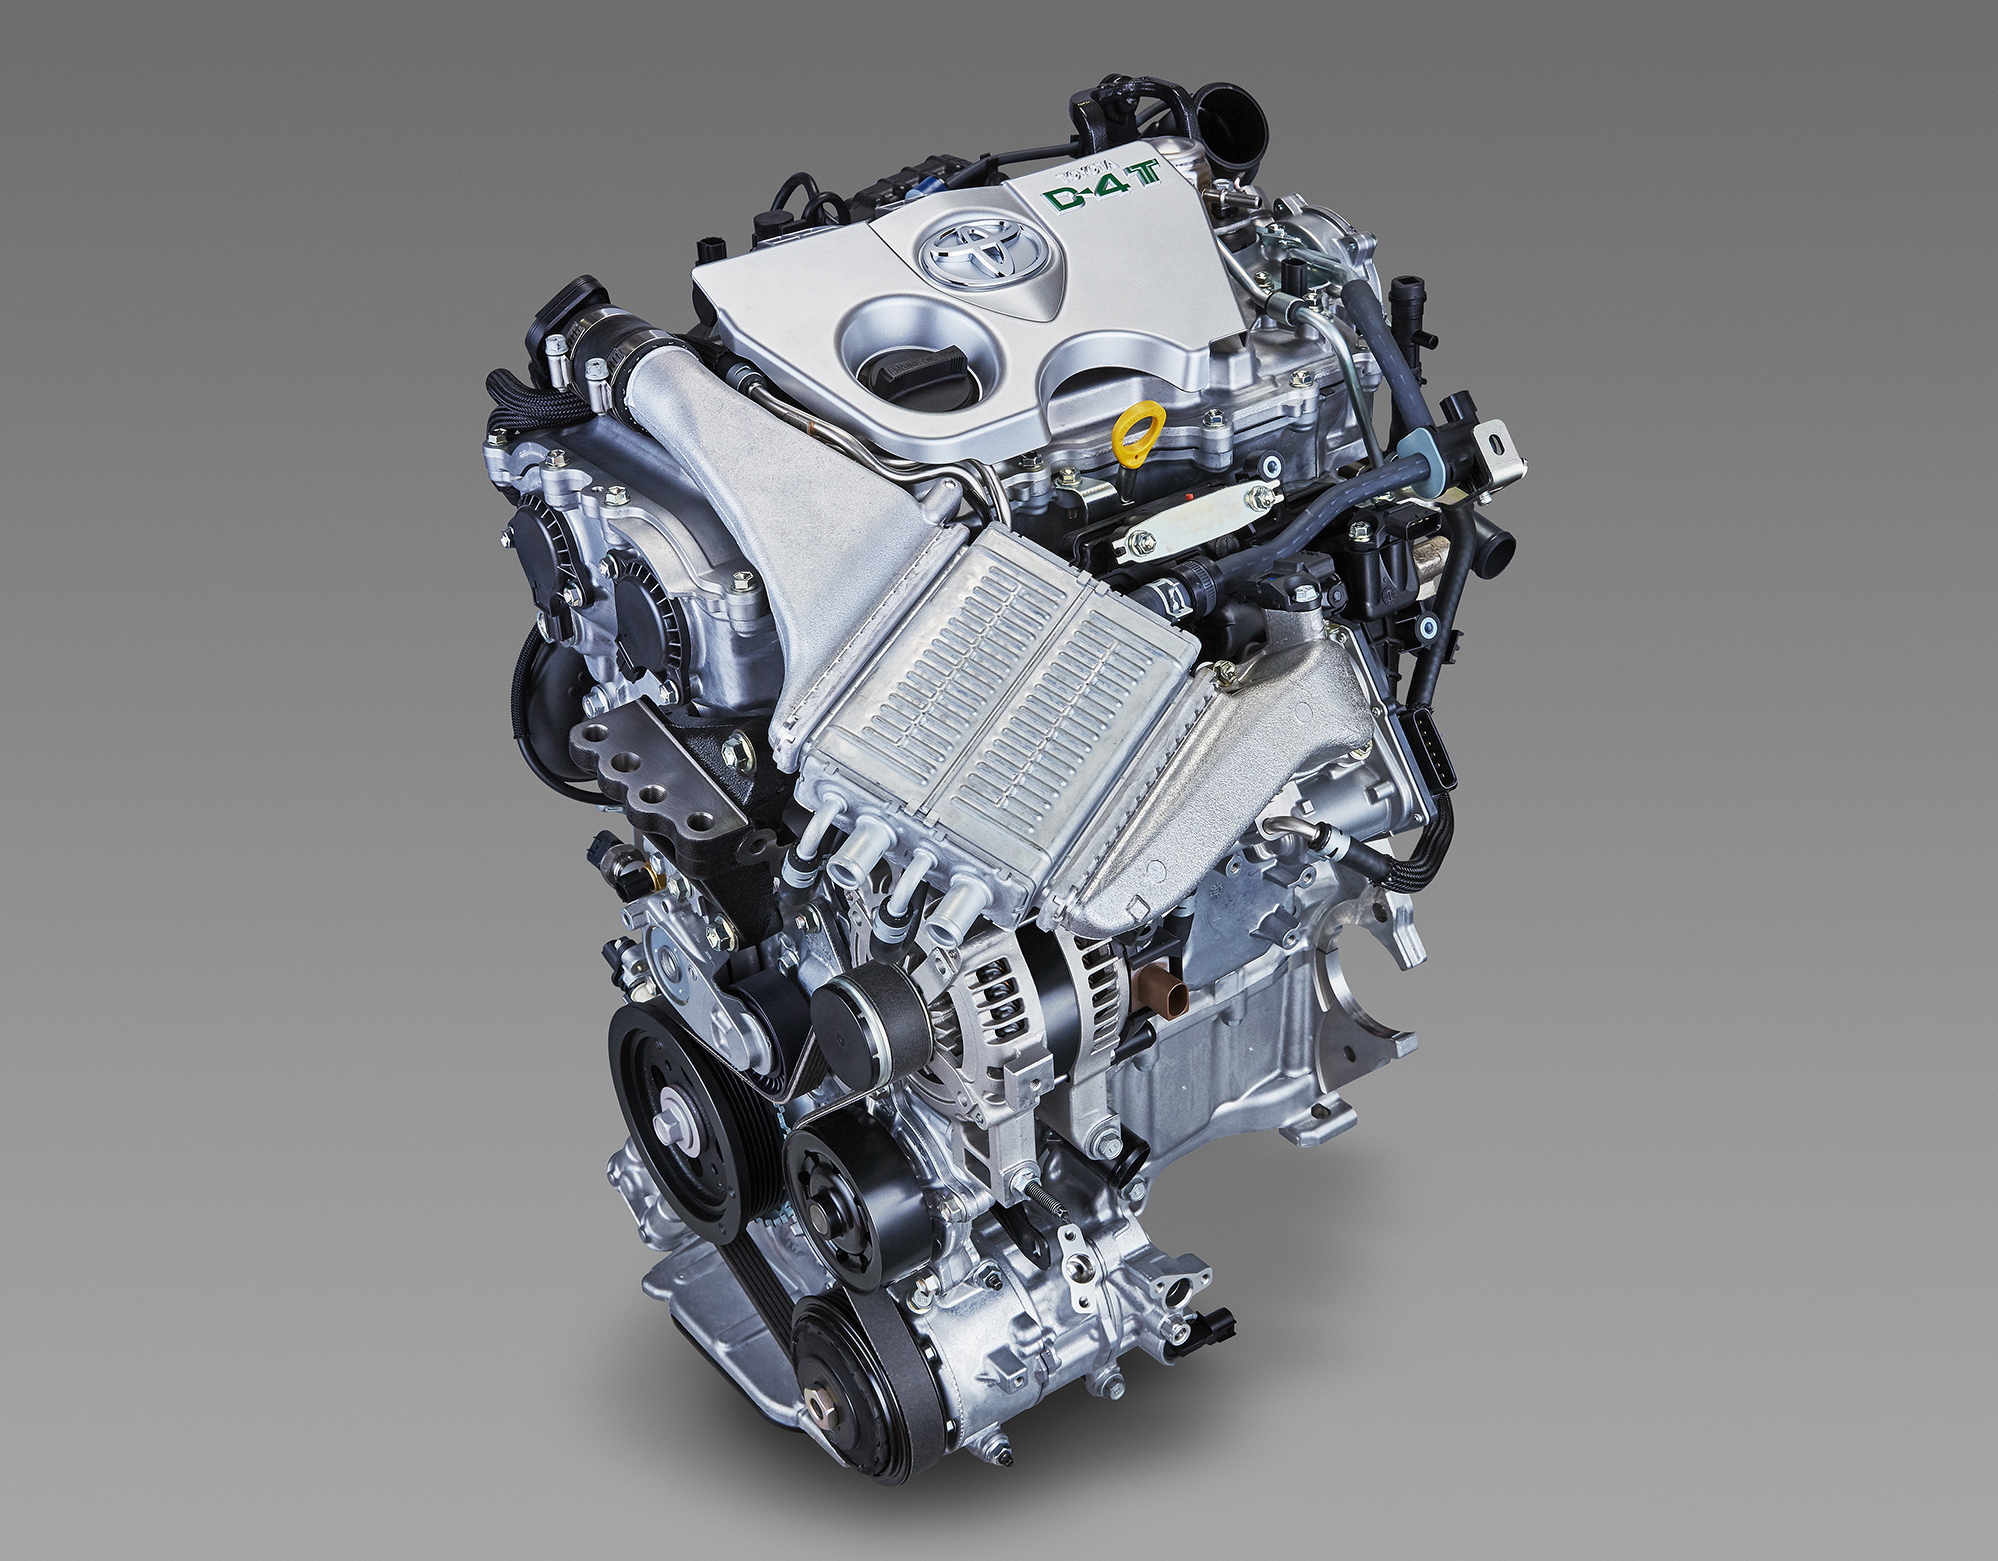 Toyota Doubles Turbo Offerings in New Engine Lineup - Toyota